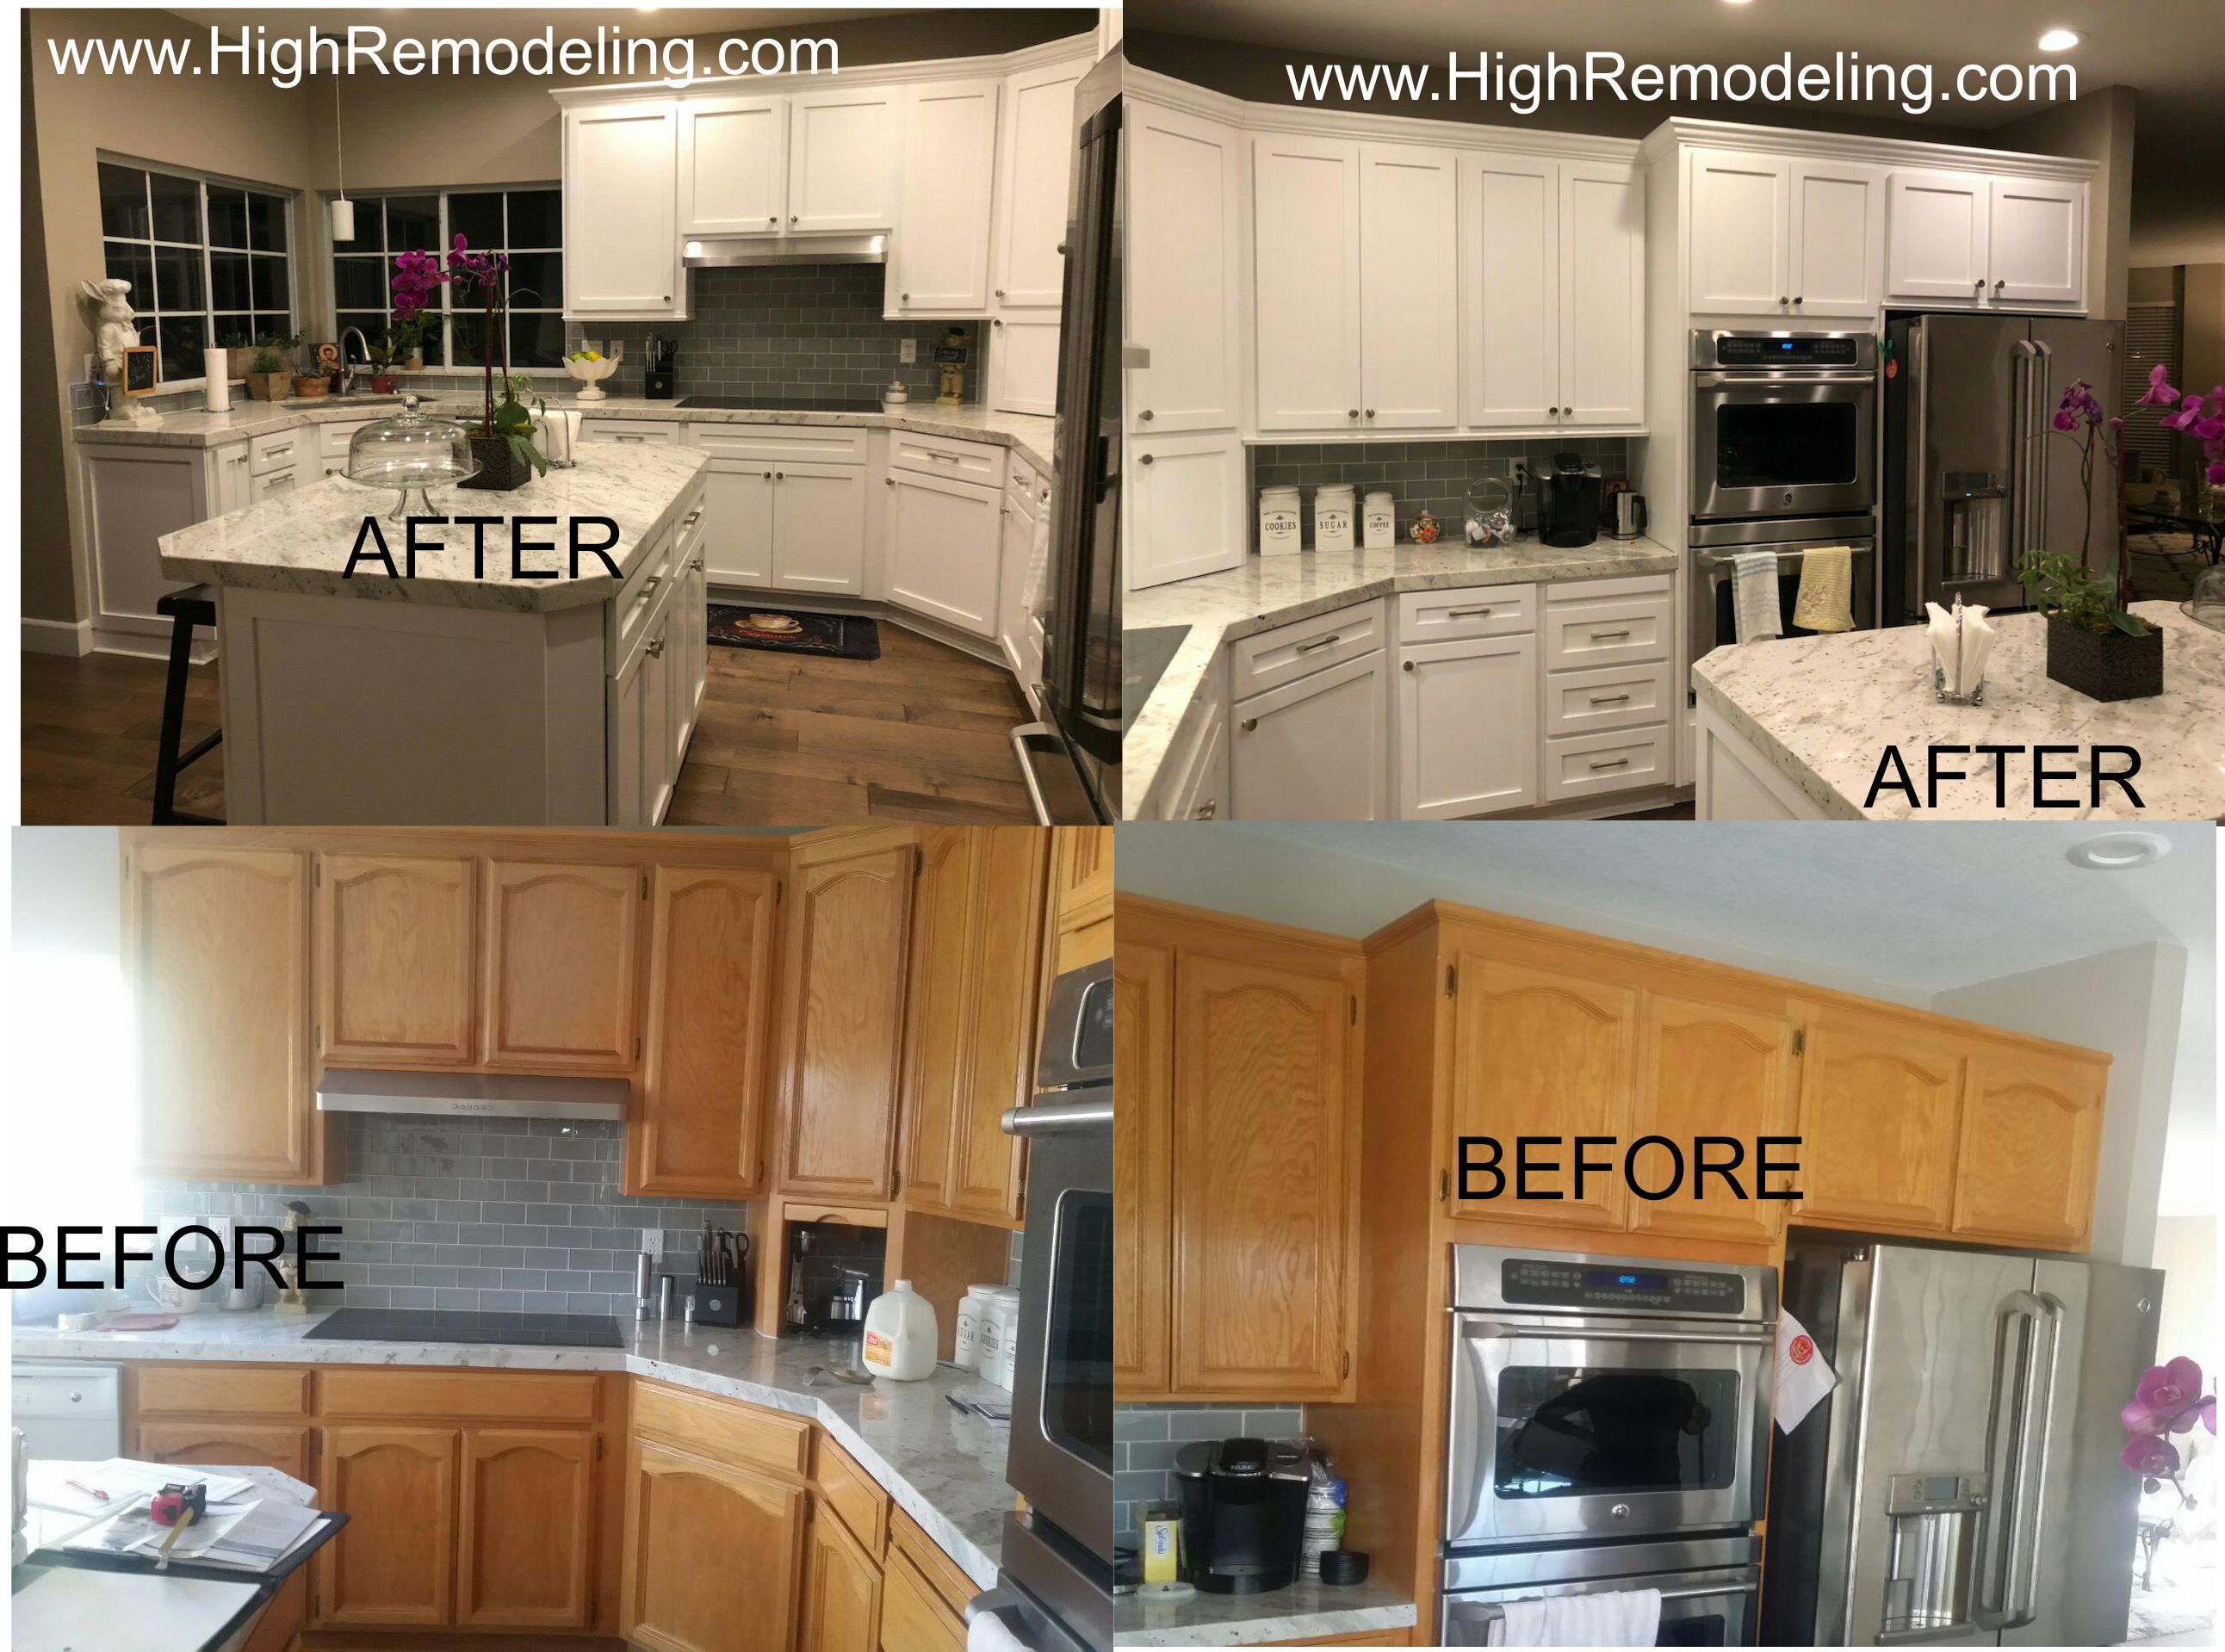 High Tech Services Remodeling Cabinet Refacing Cabinet